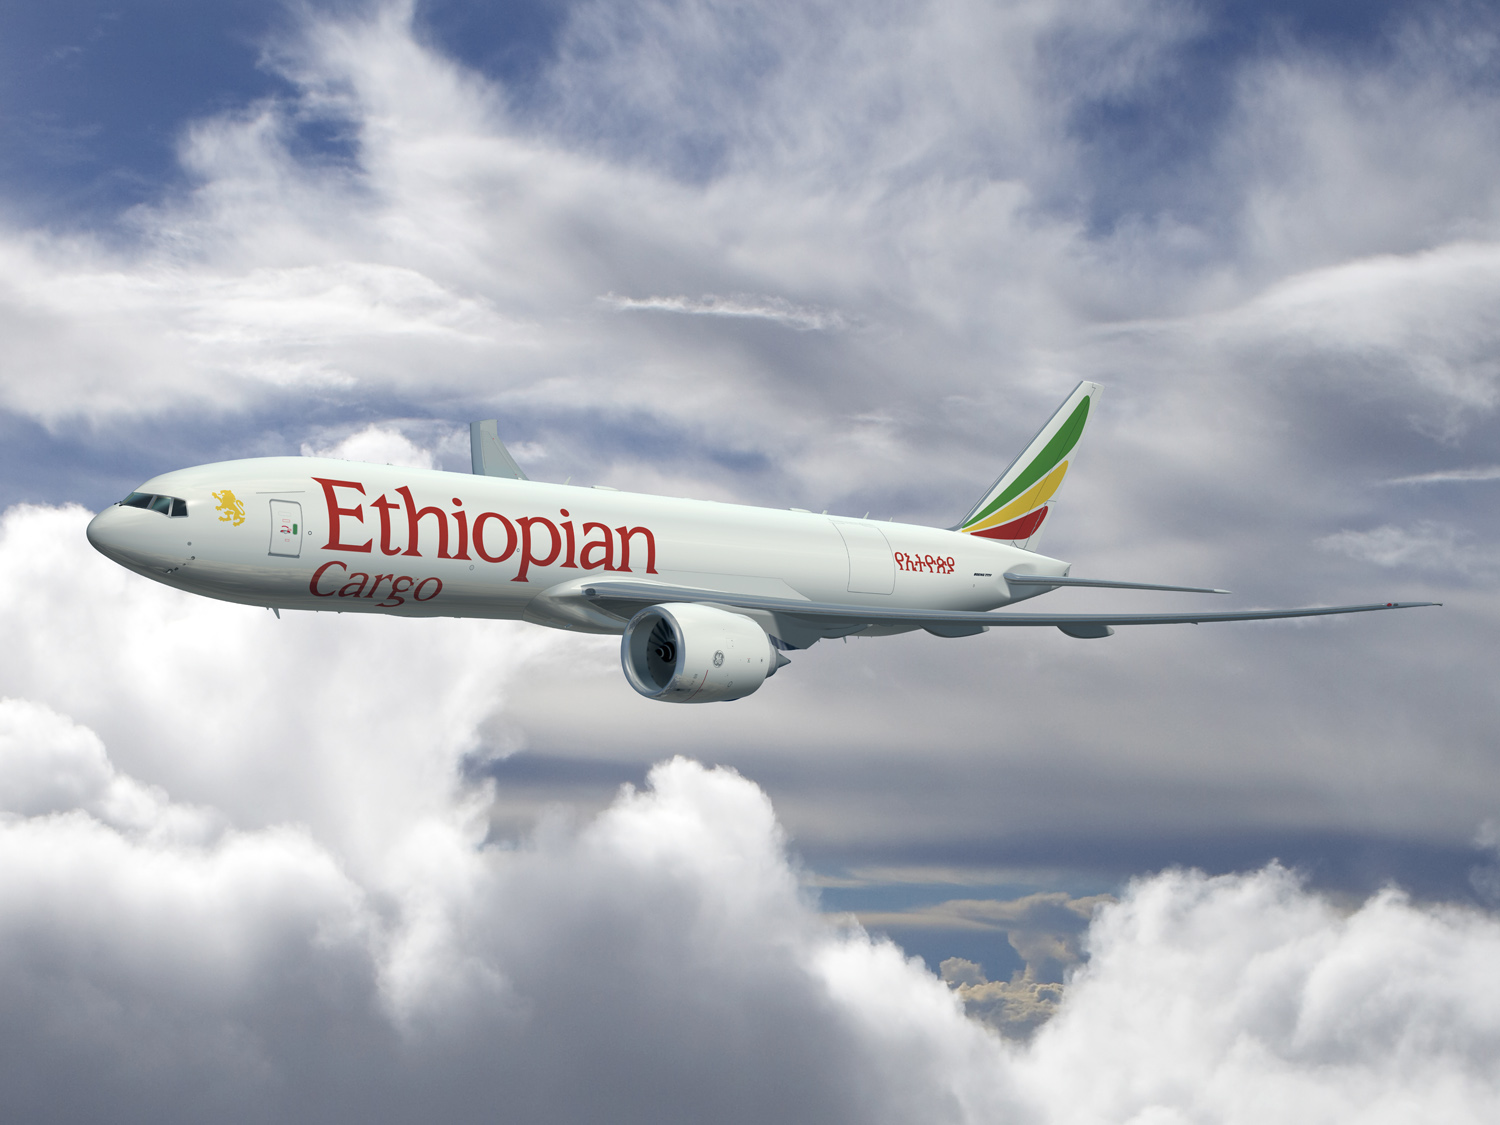 Reports link Ethiopian and DHL in joint venture